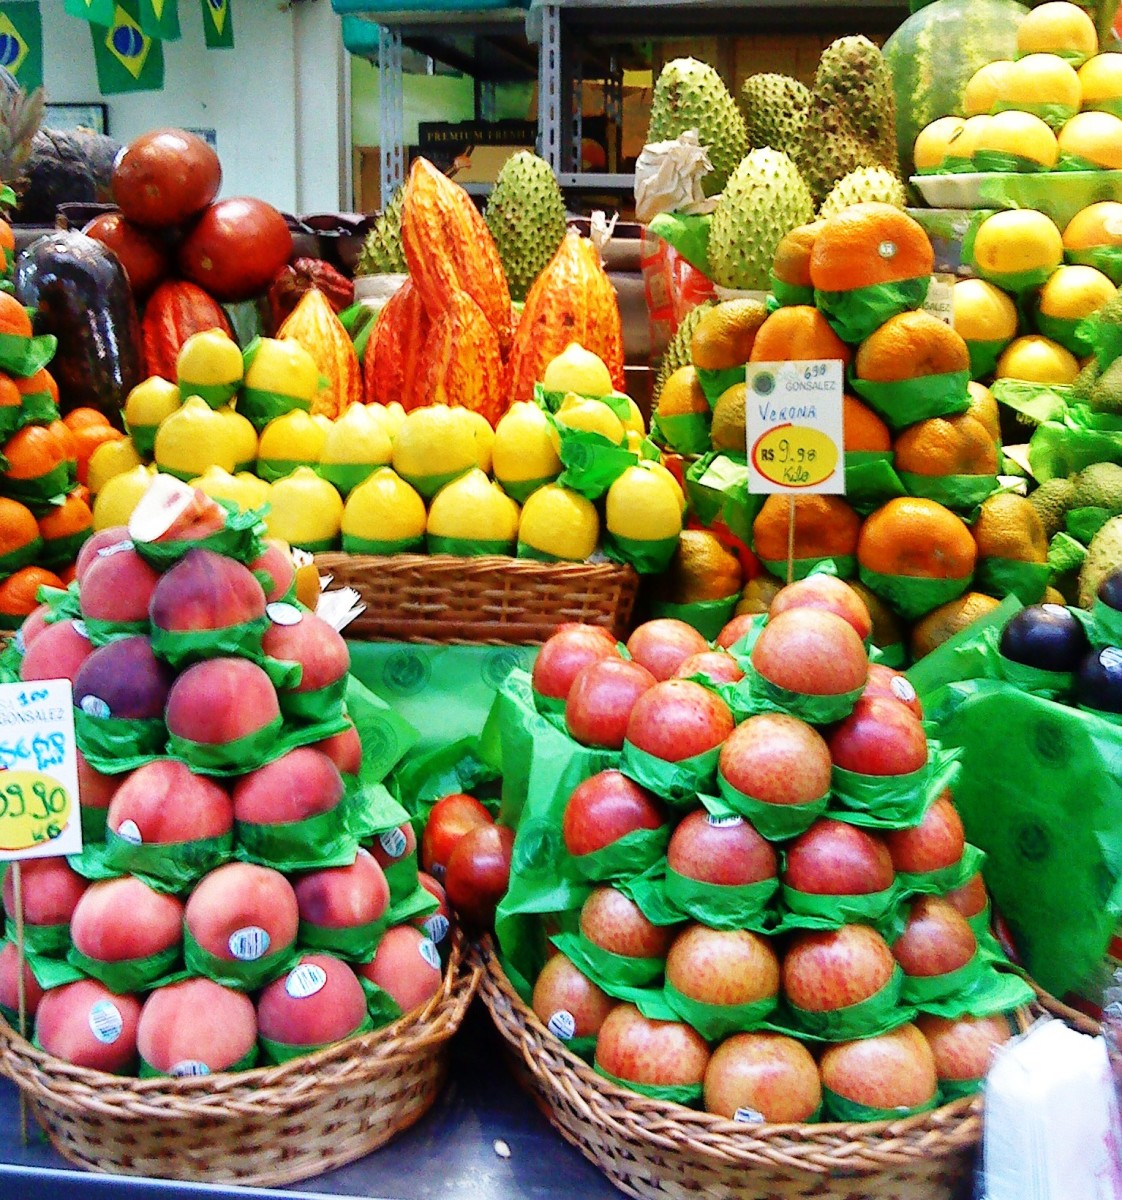 Fruits on display at Sao Paulo Municipal Market.